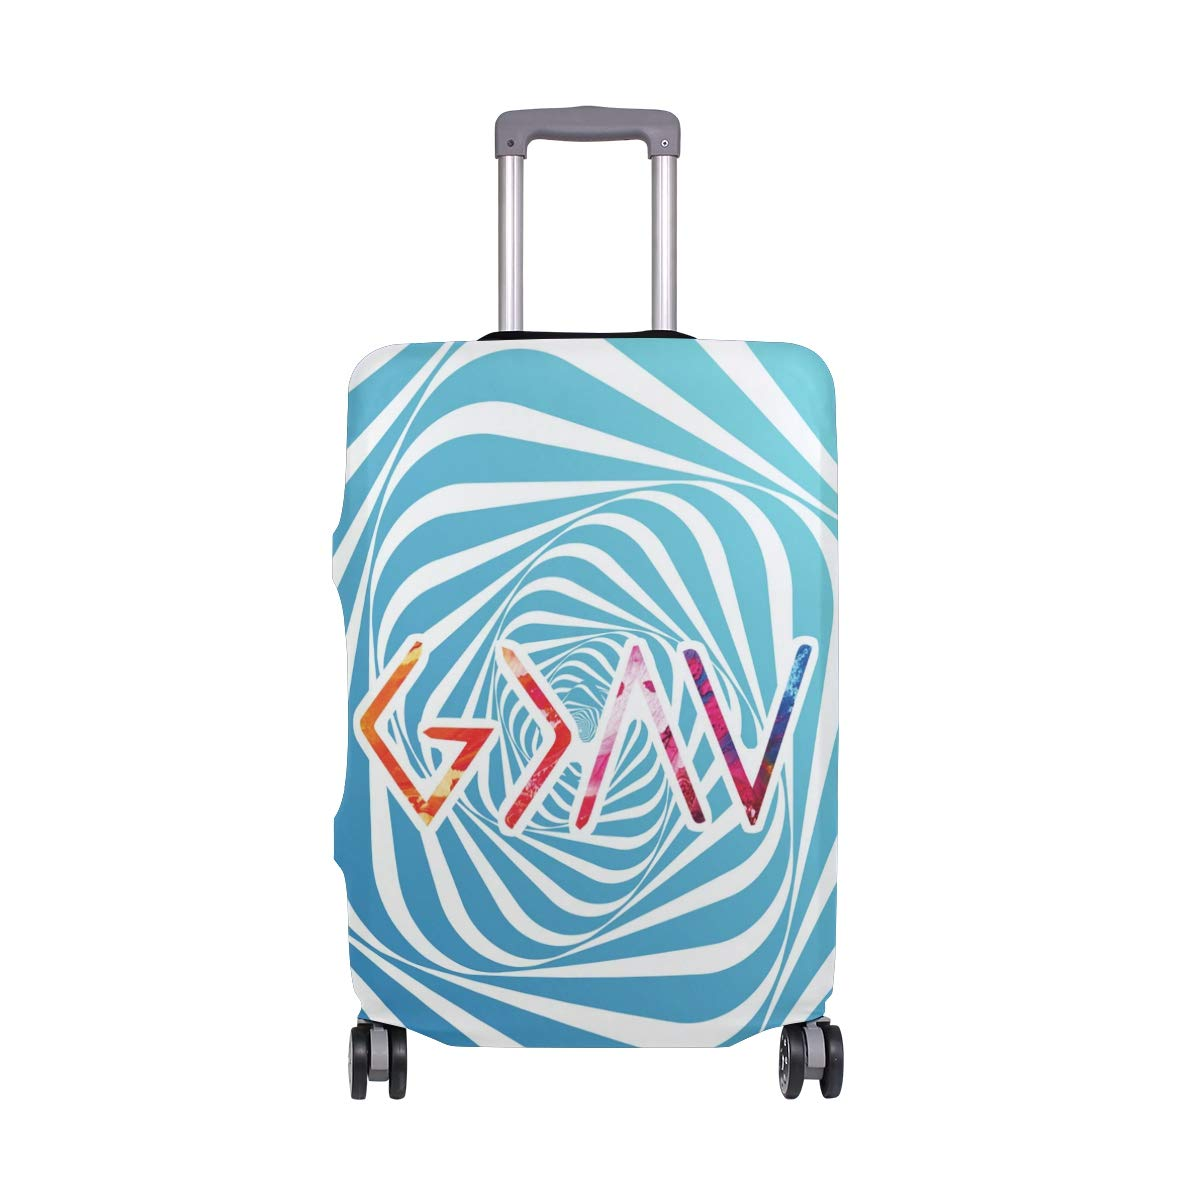 God Is Greater Travel Luggage Cover - Suitcase Protector HLive Spandex Dust Proof Covers with Zipper, Fits 18-32 inch